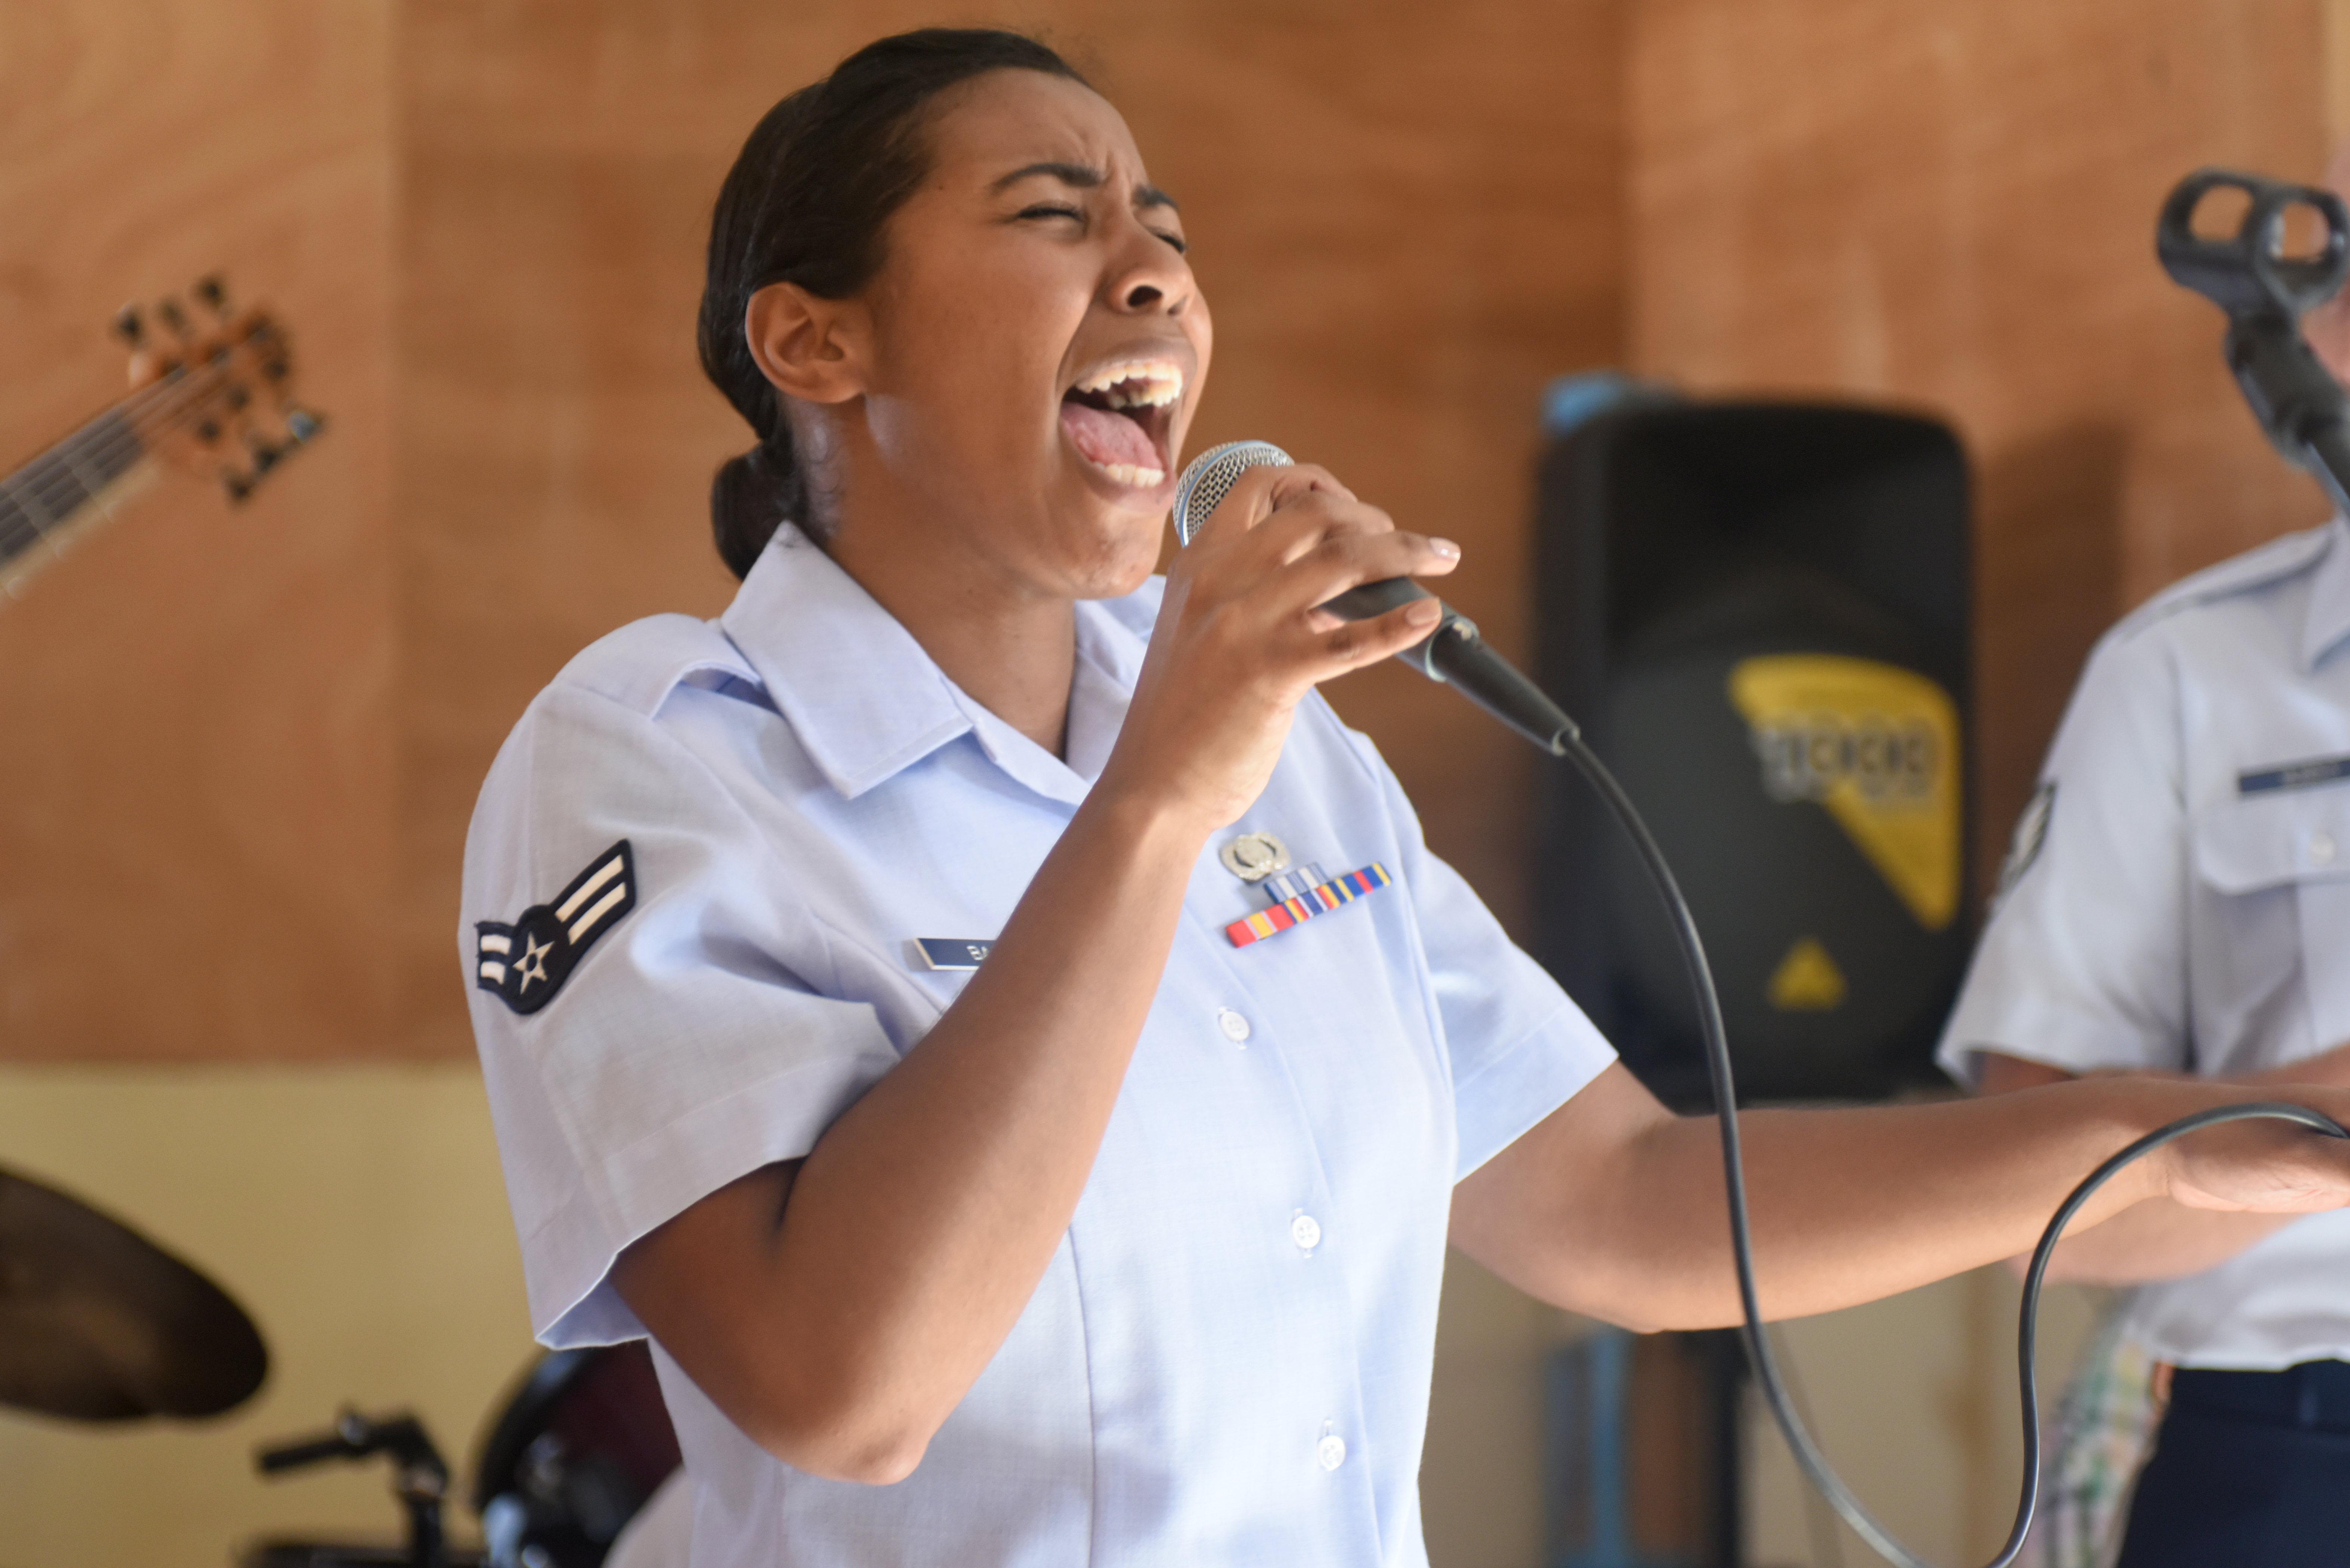 Airman 1st Class Sierra Bailey, U.S. Air Forces in Europe Band vocalist, sings for students of the National School of the Arts in Dakar, Senegal, March 21, 2018. The USAFE Band is in Dakar to support African Partnership Flight Senegal, a military-to-military event focusing on improving professional military aviation knowledge and skills. (U.S. Air Force photo by Airman 1st Class Eli Chevalier)